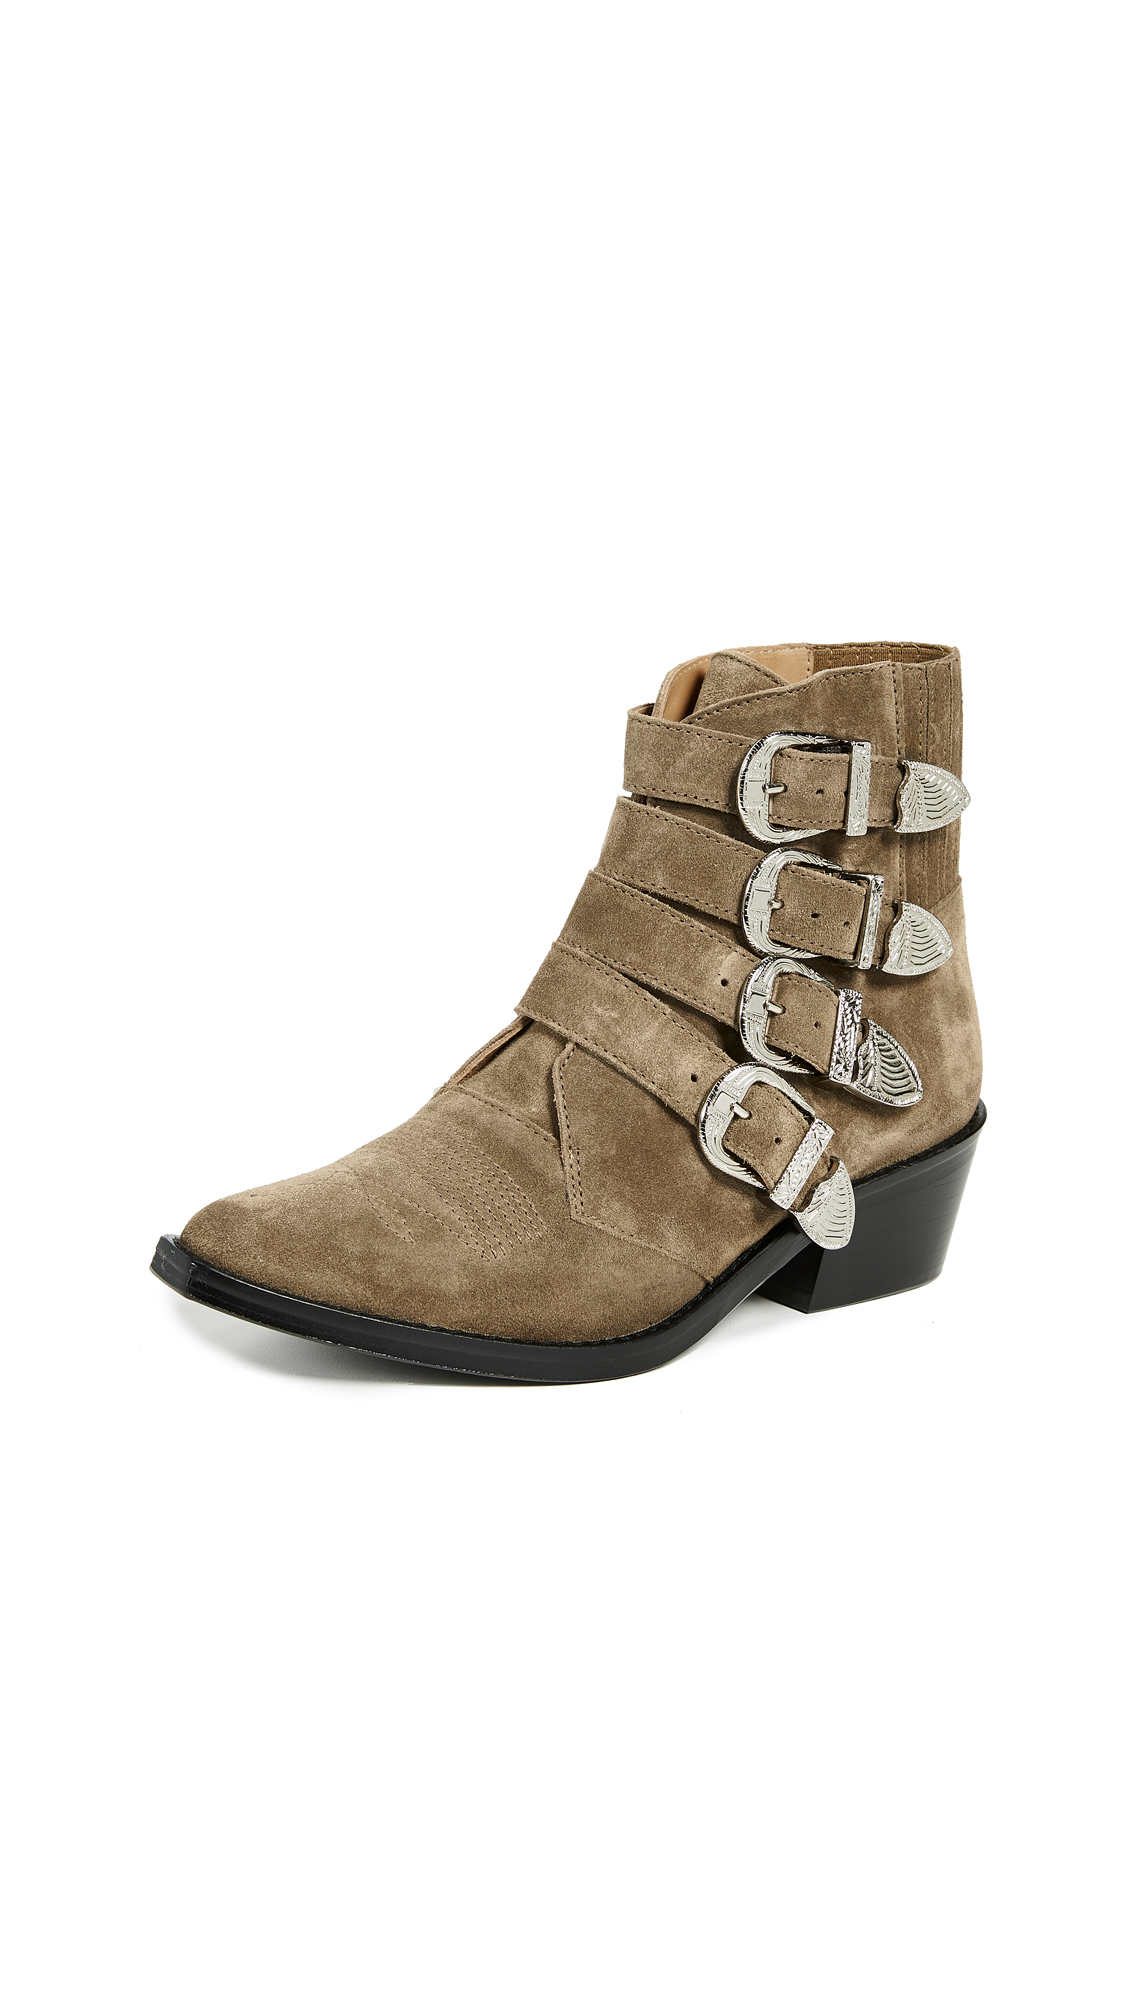 Toga Pulla Buckled Booties - Khaki